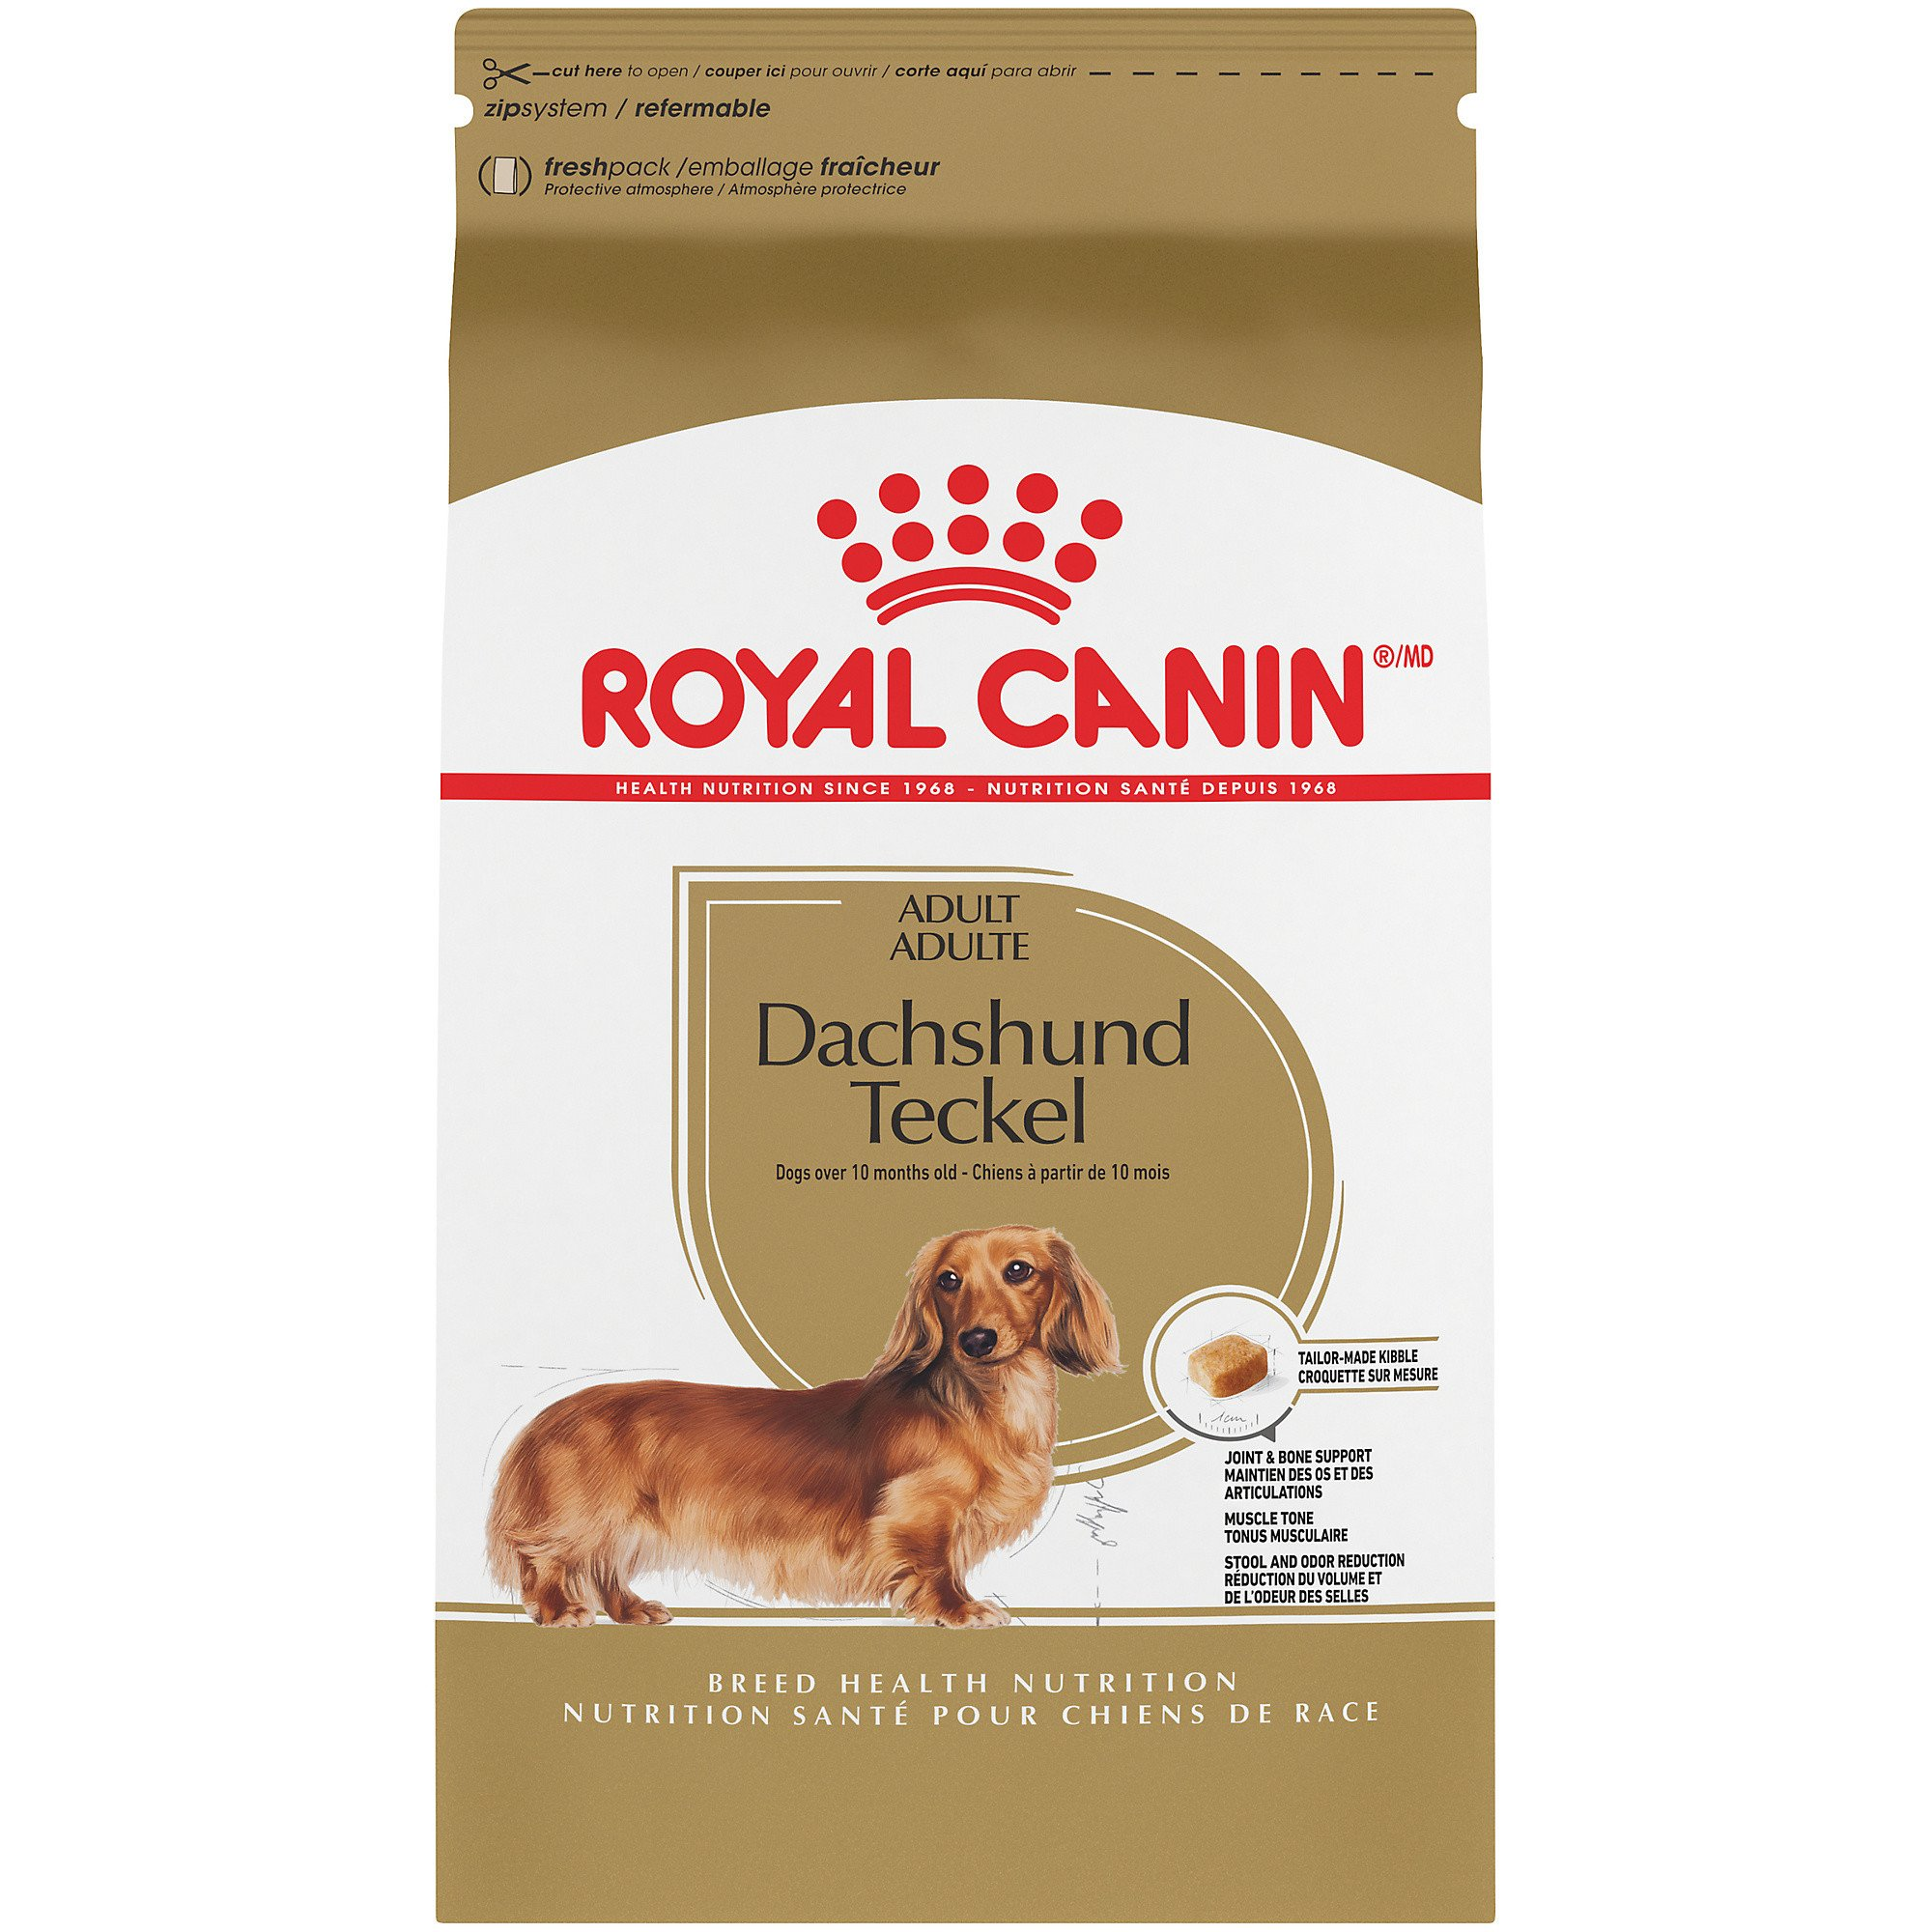 Royal Canin MINI Canine Health Nutrition Dachshund 28